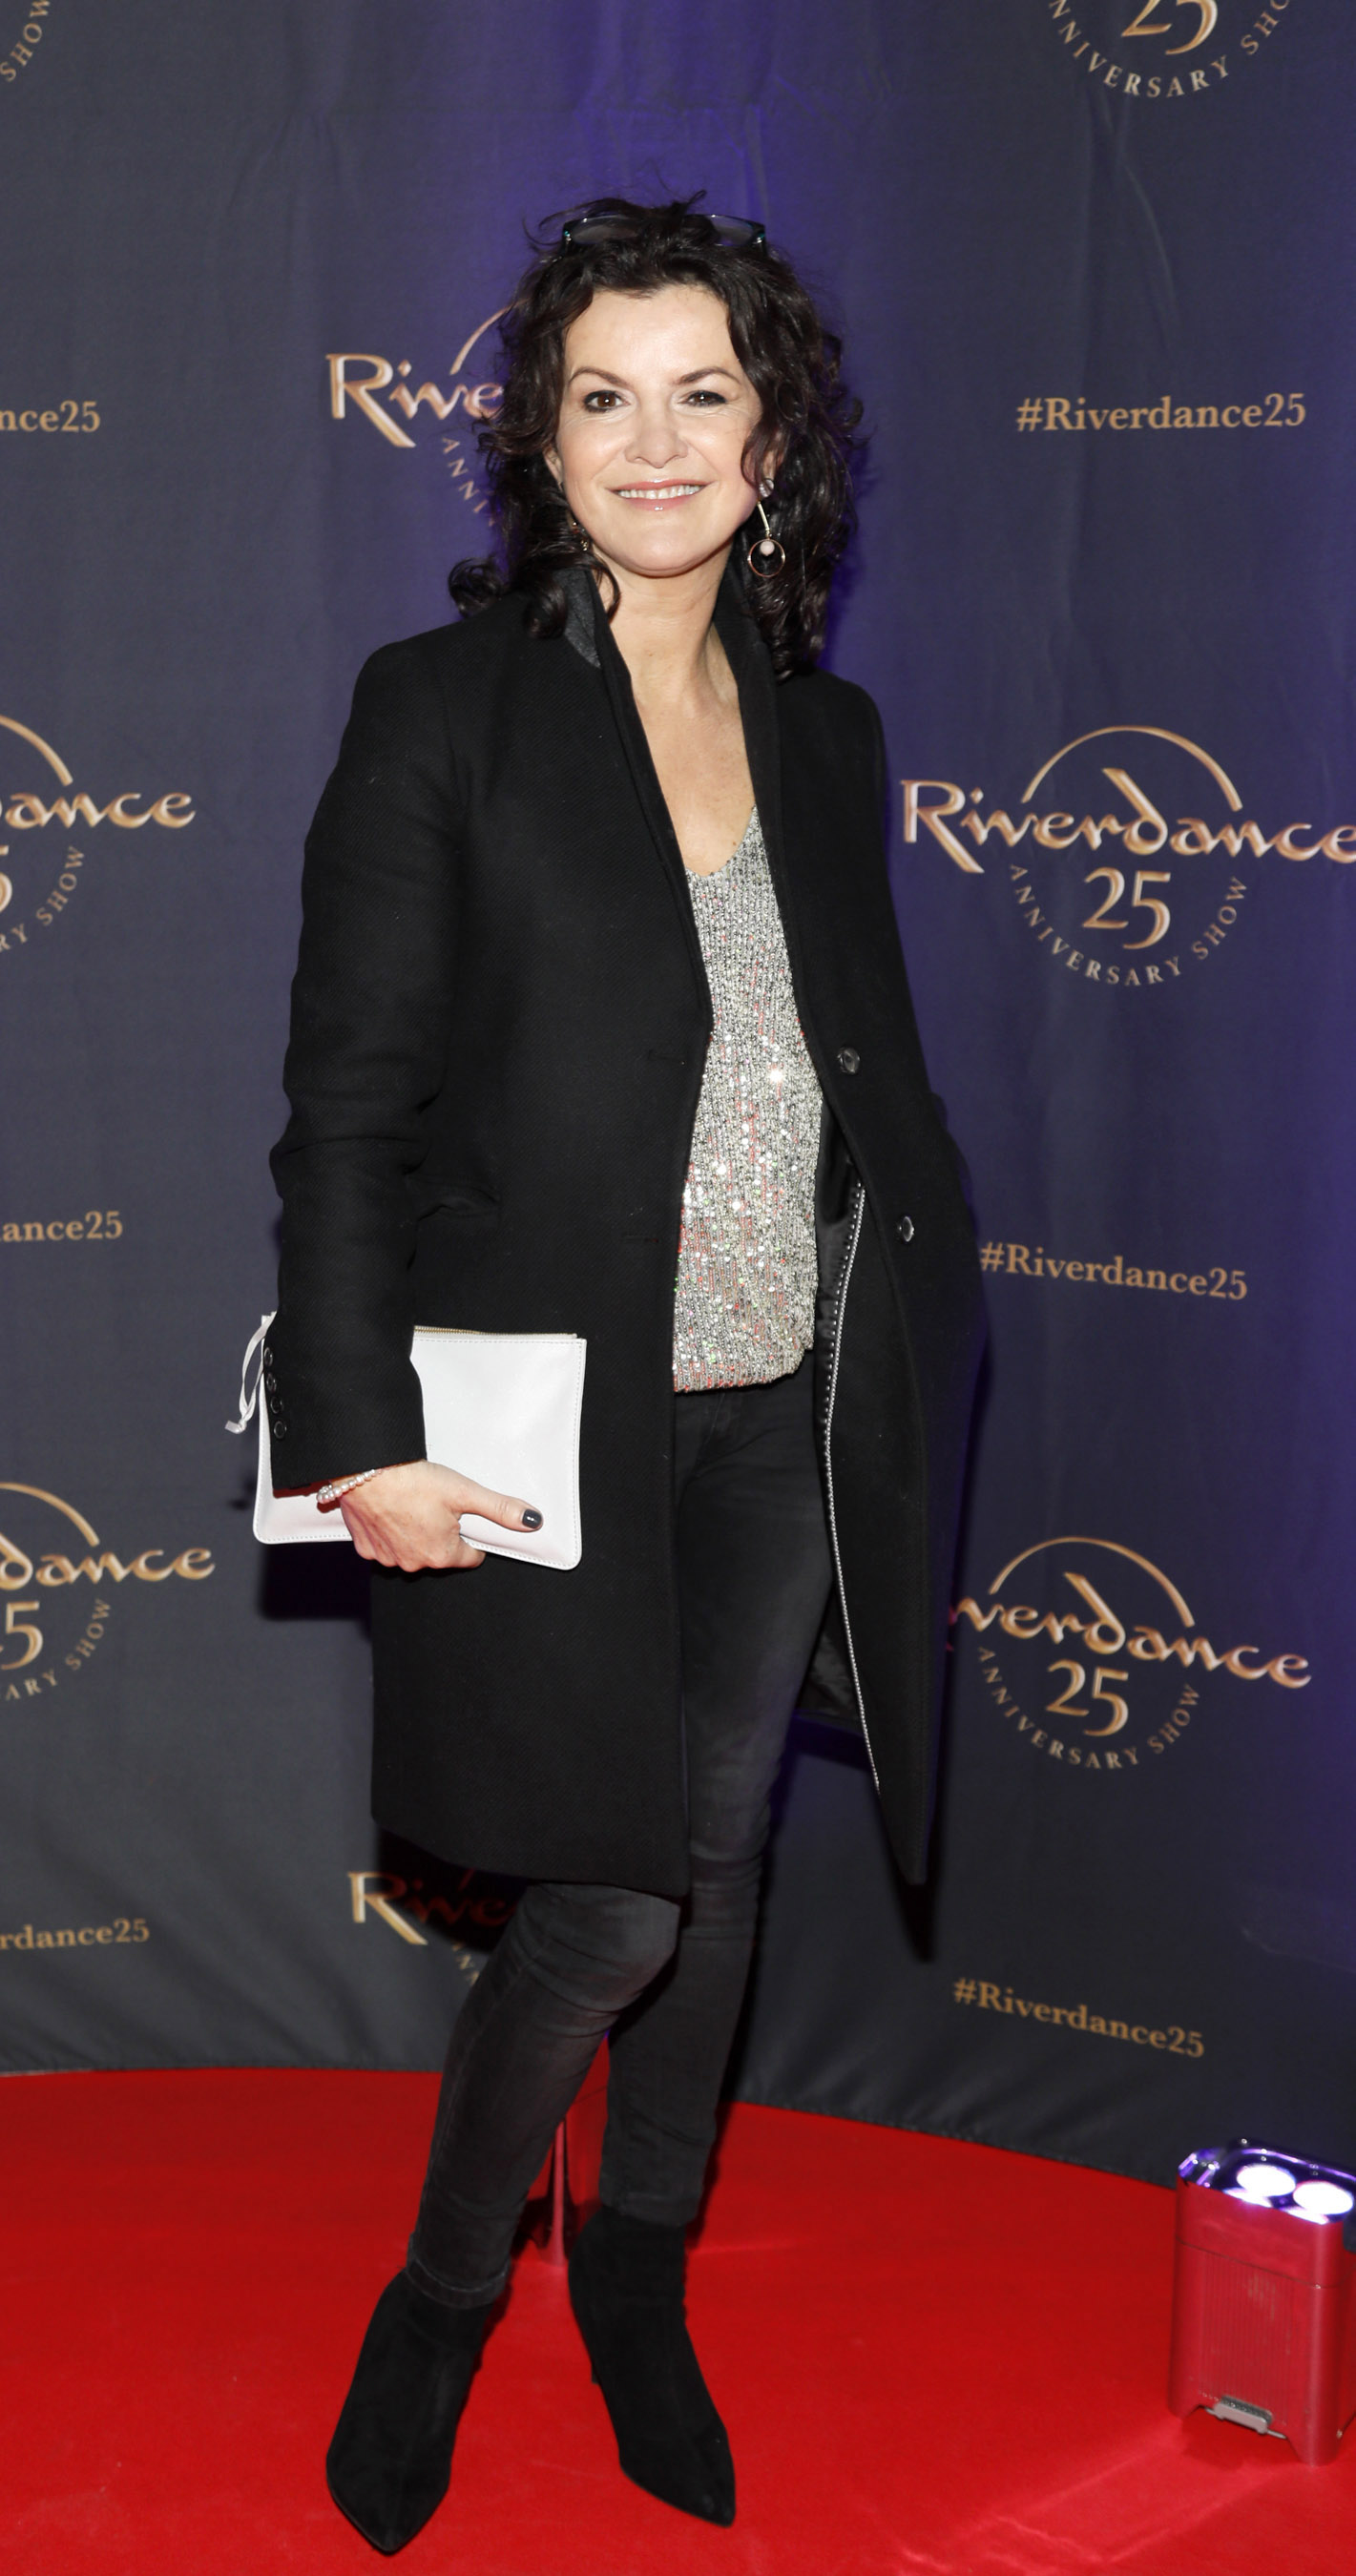 Deirdre O'Kane at the historic gala performance of Riverdance 25th Anniversary show at 3Arena Dublin exactly 25 years to the day that Riverdance was first performed at the Point Depot.  Photo: Kieran Harnett